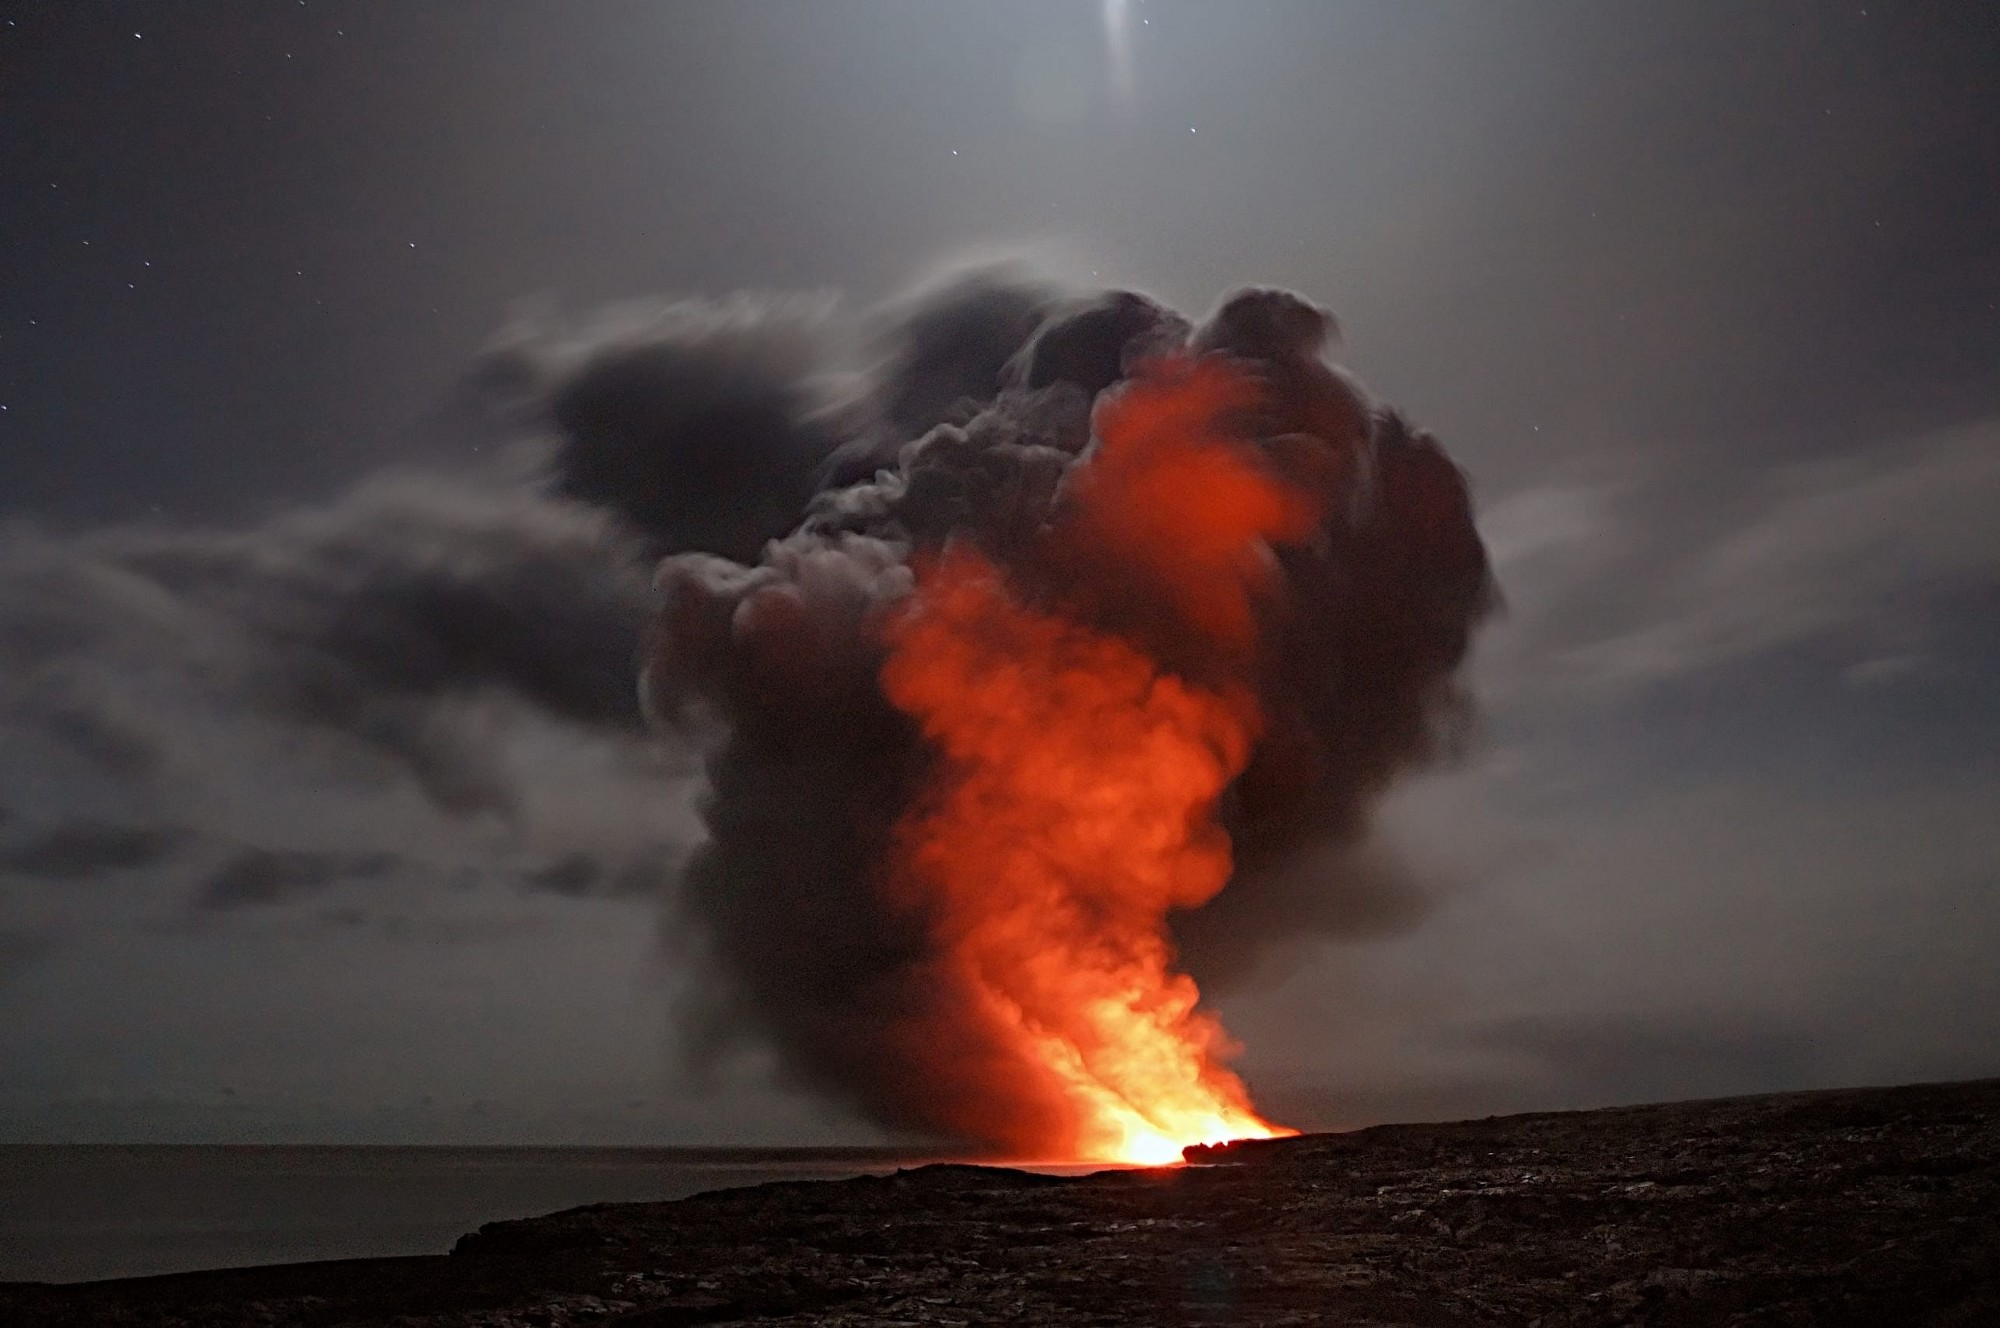 A red fire with smoke billowing from it burns against a grey sky.